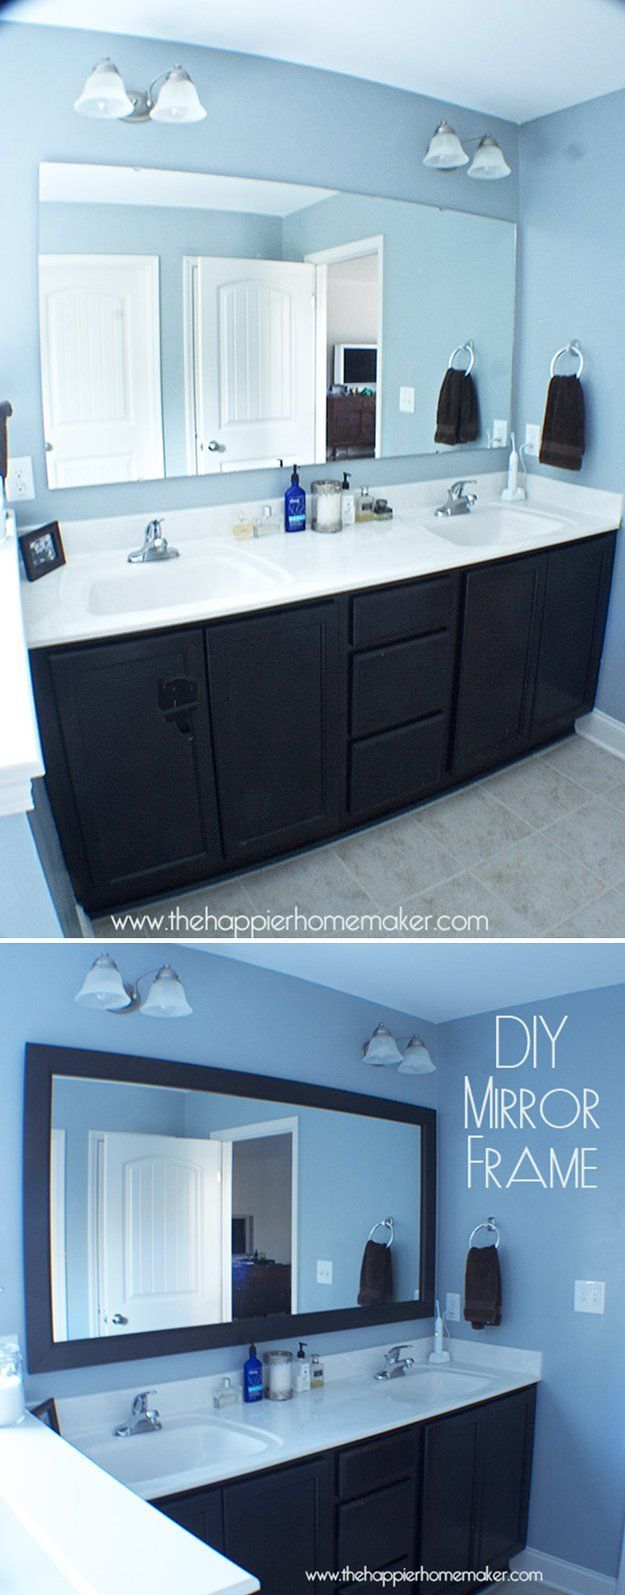 63 best bathroom decor images on pinterest bathroom ideas bathroom decor with mirror frames by diy ready at http diyready com